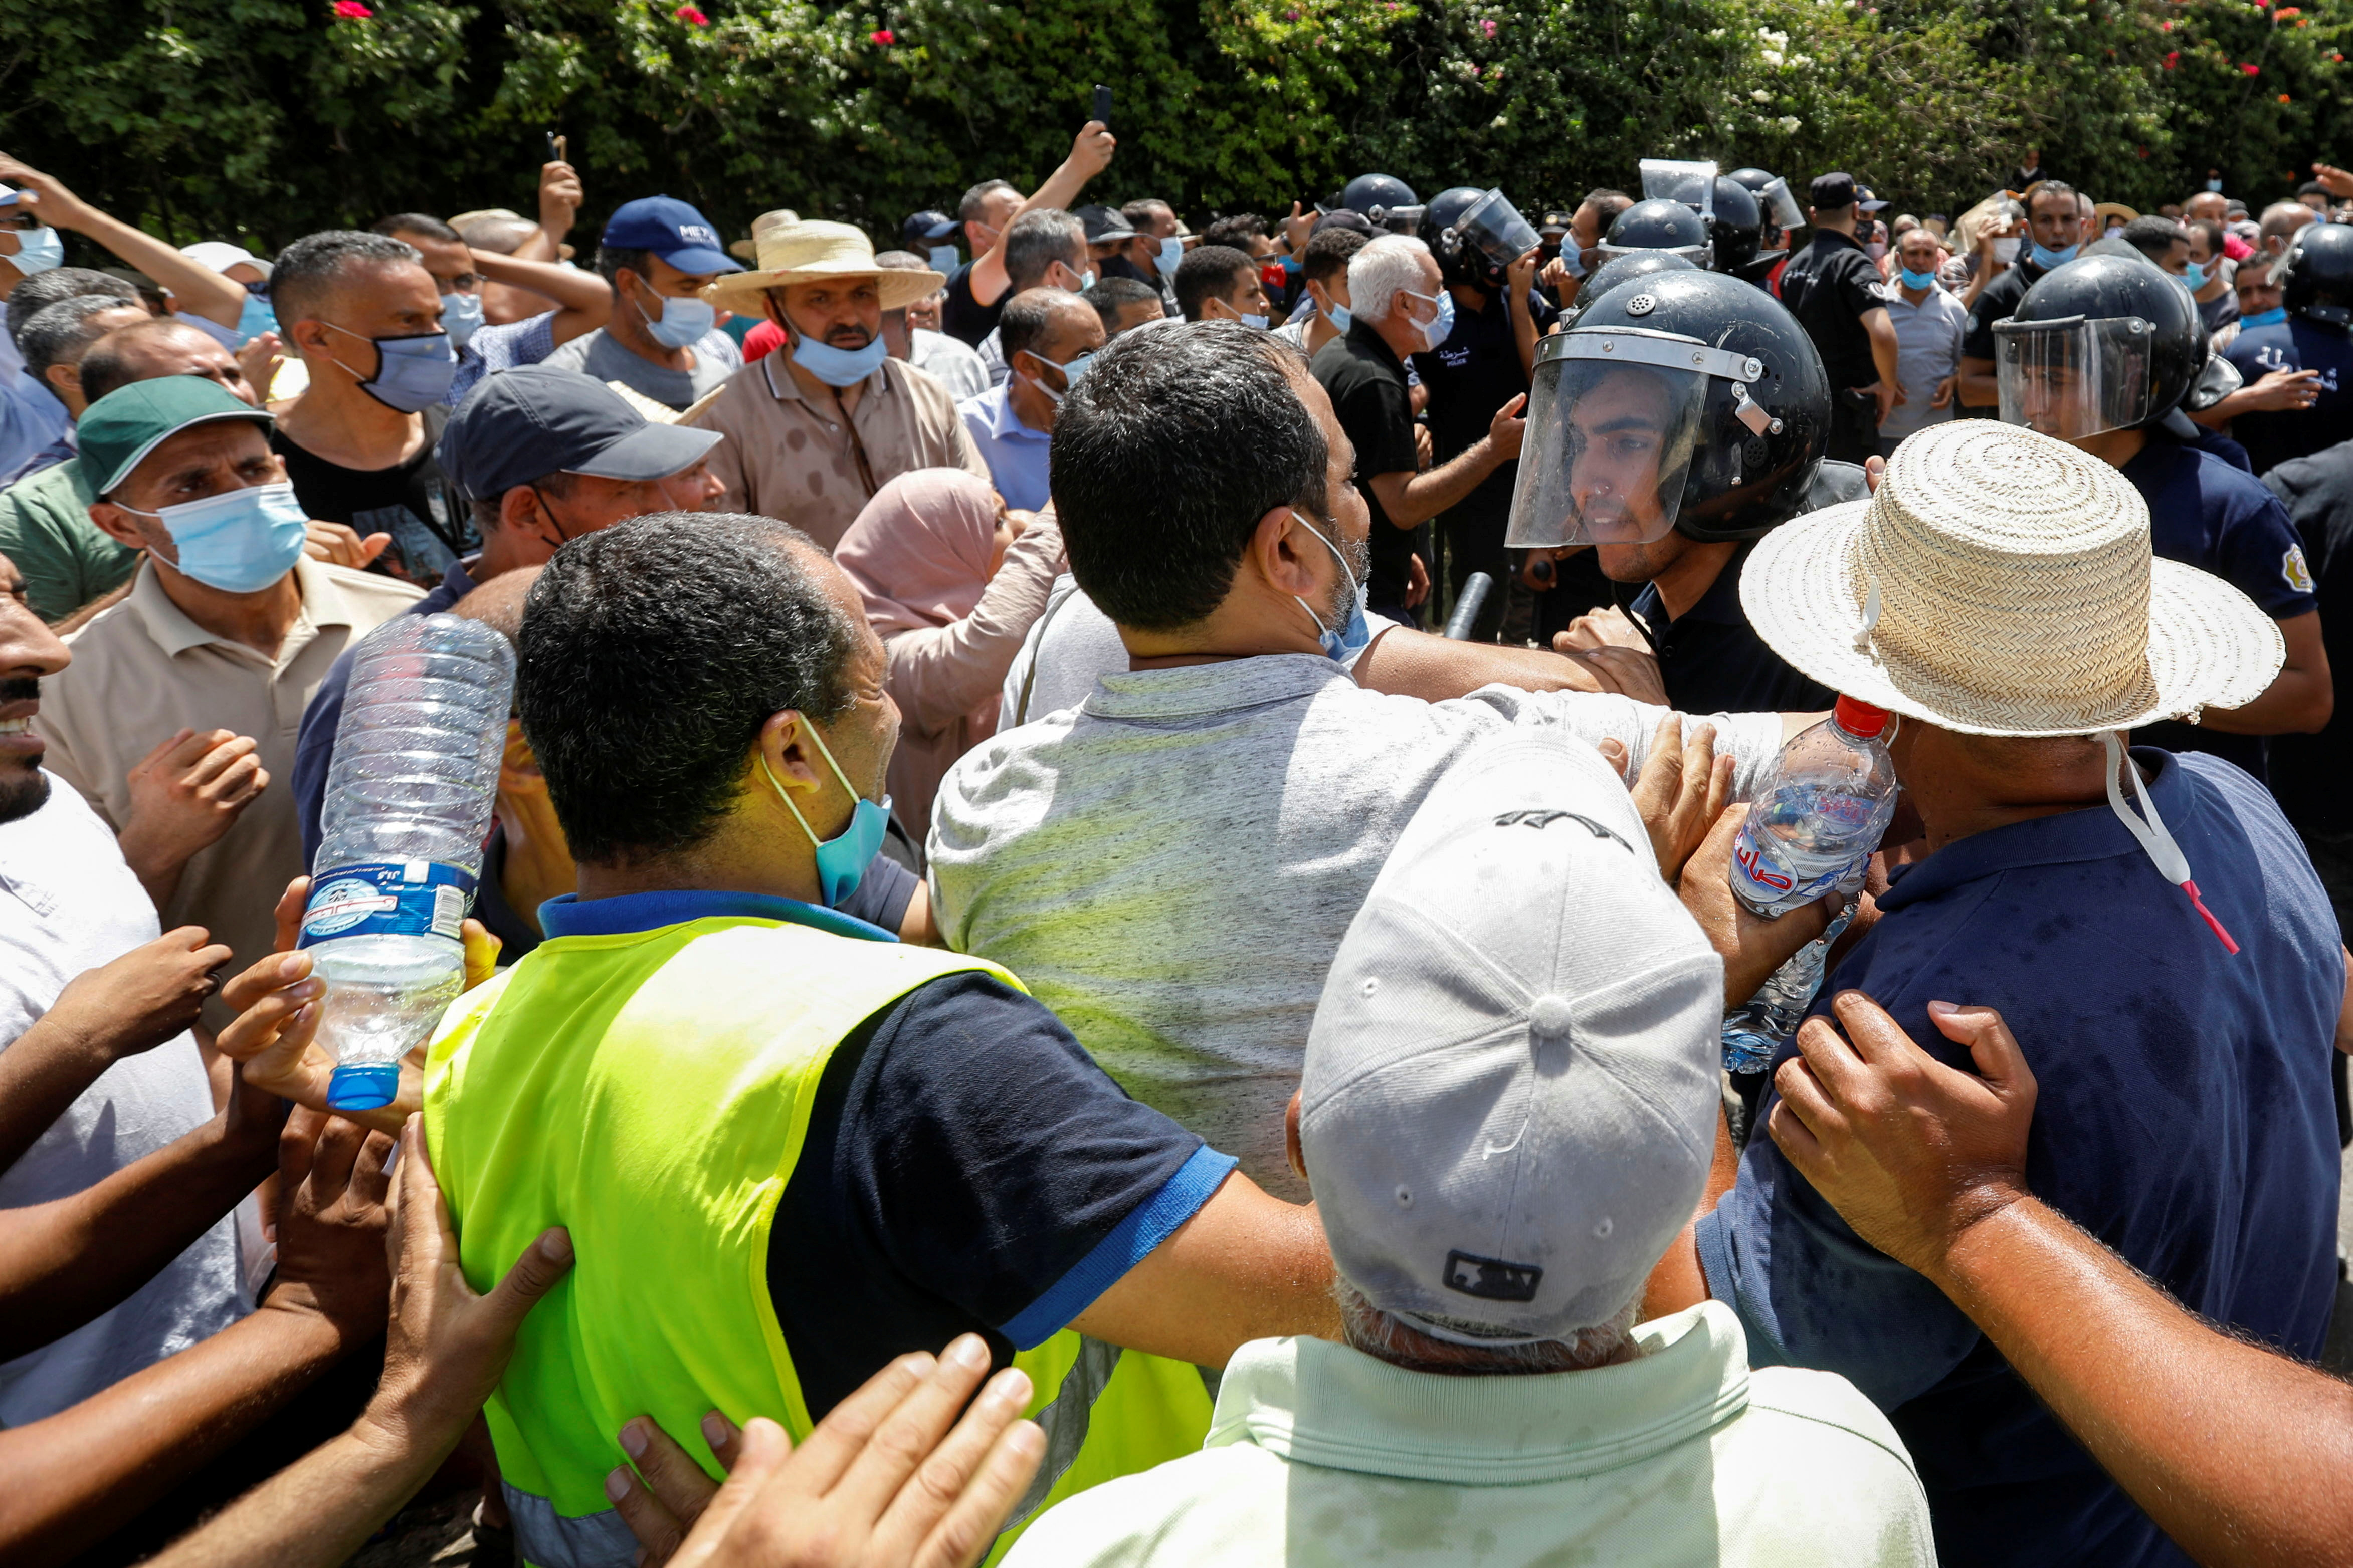 A police officer pushes back supporters of Tunisia's biggest political party, the moderate Islamist Ennahda, as they attempt to reach the parliament building in Tunis, Tunisia July 26, 2021. REUTERS/Zoubeir Souissi